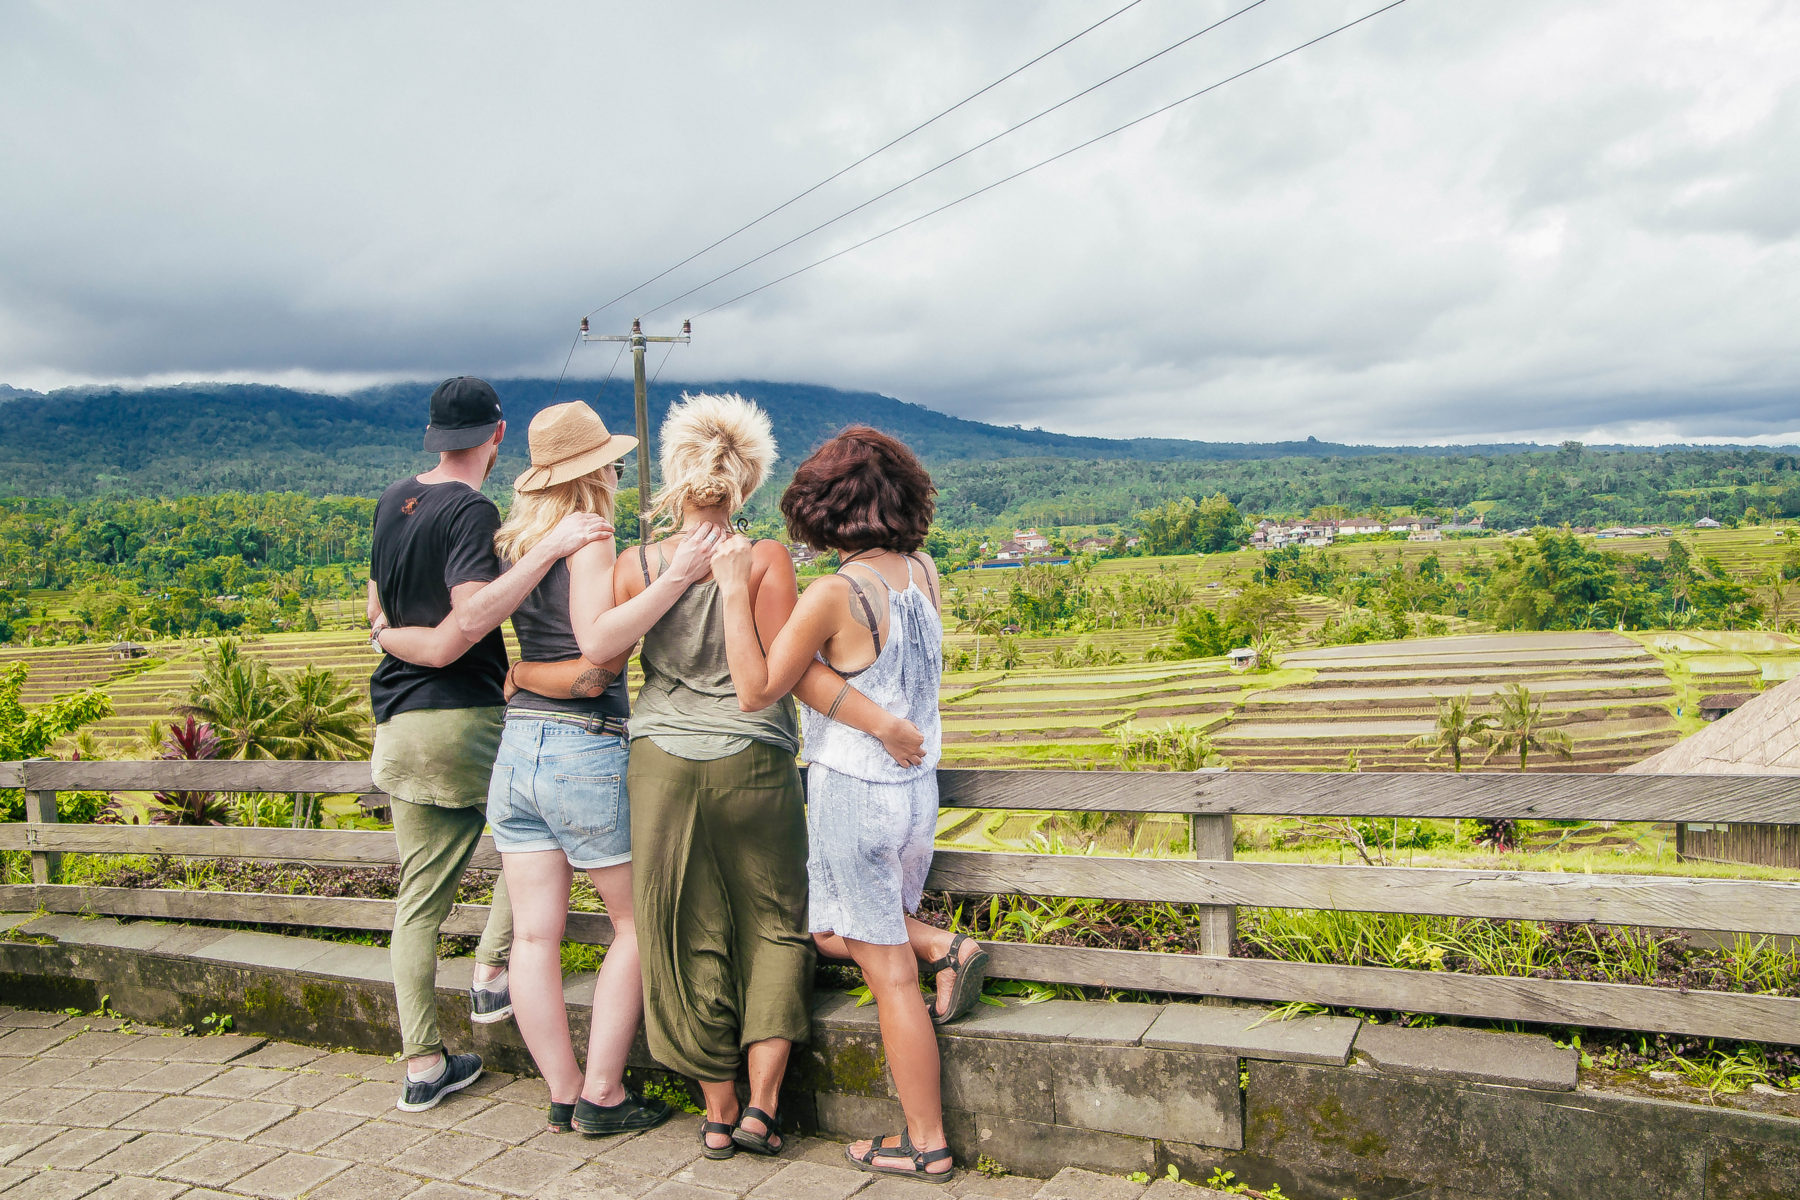 bali explore indonesia friends together standing next to rice fields trip travel